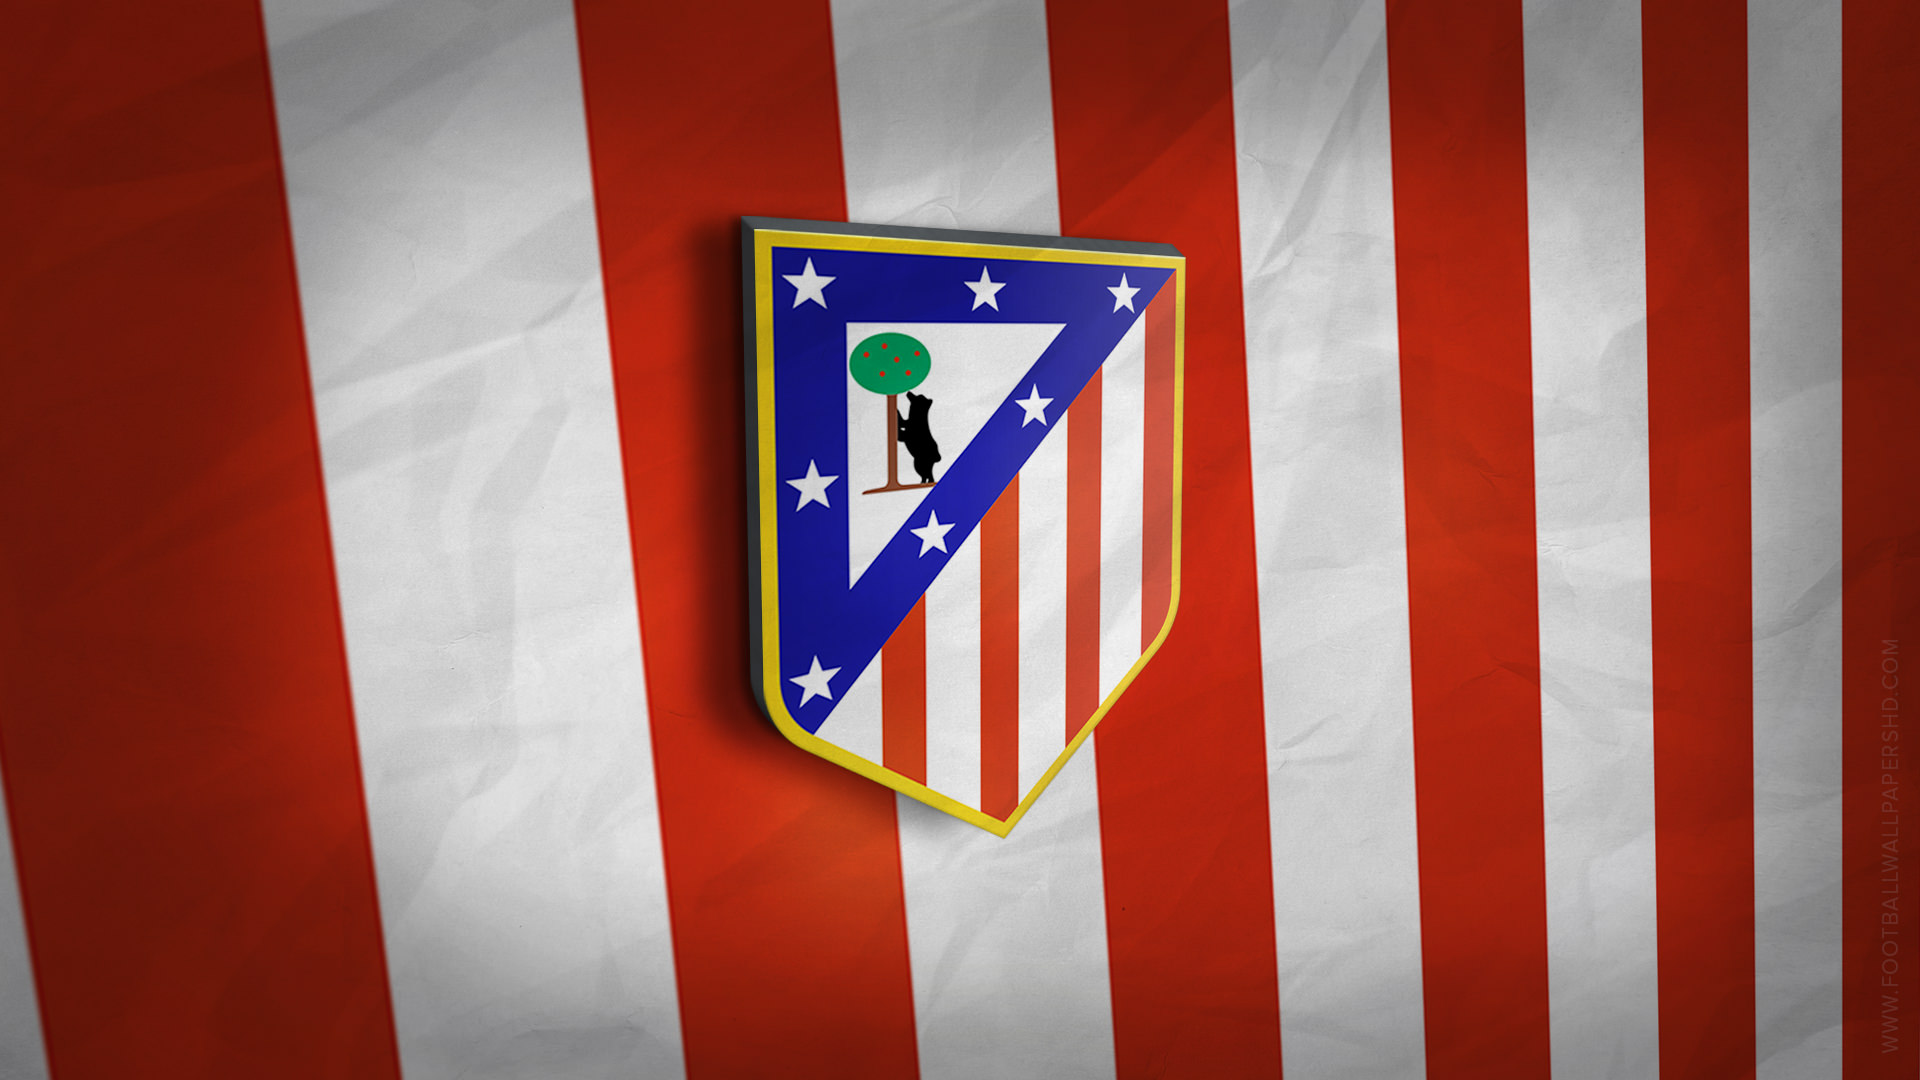 Atletico Madrid 3D Logo Wallpaper Football Wallpapers HD 1920x1080